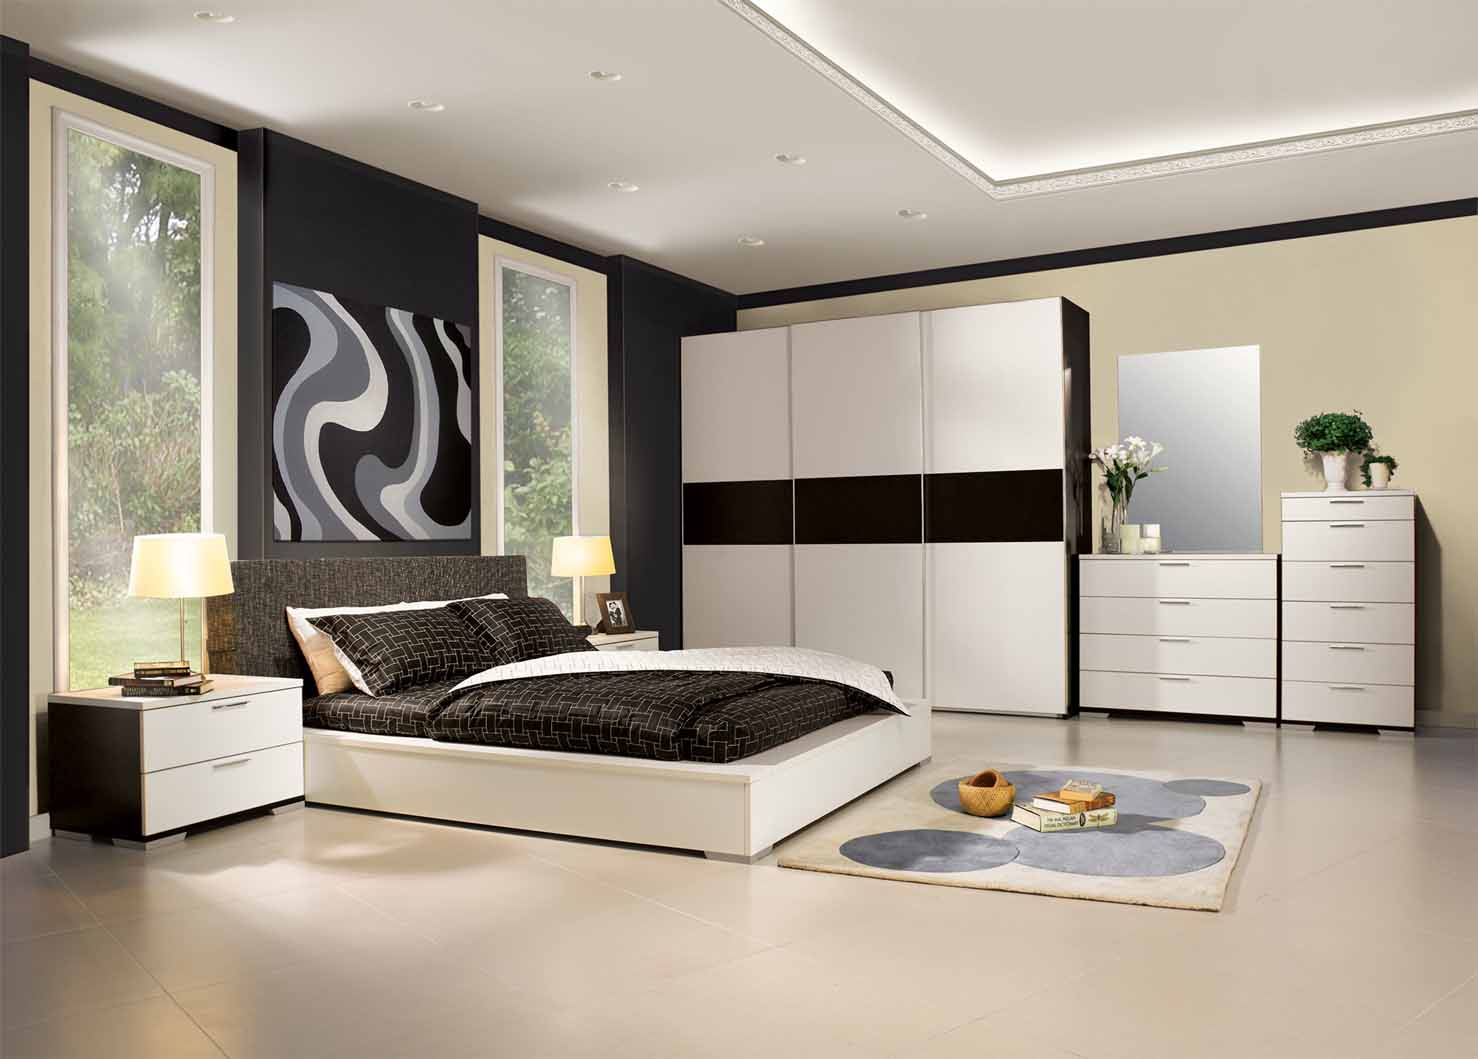 Modern black bedroom furniture popular interior house ideas for Modern interior design furniture